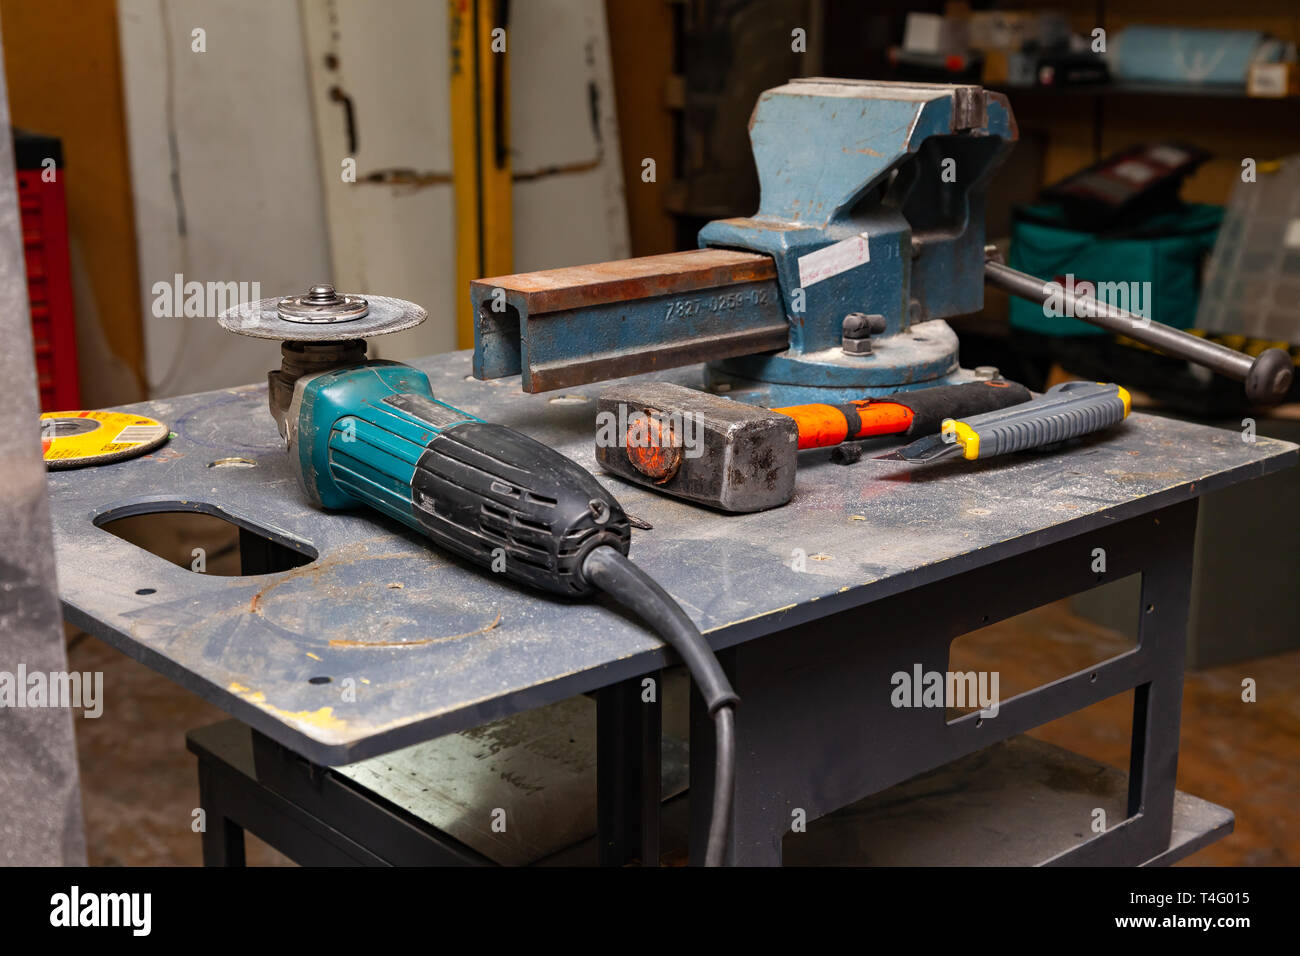 View of a workbench with a set of tools consisting of a large heavy vise, angle grinder, screwdriver, cutter, sledgehammer, and a spare cutting disc i - Stock Image